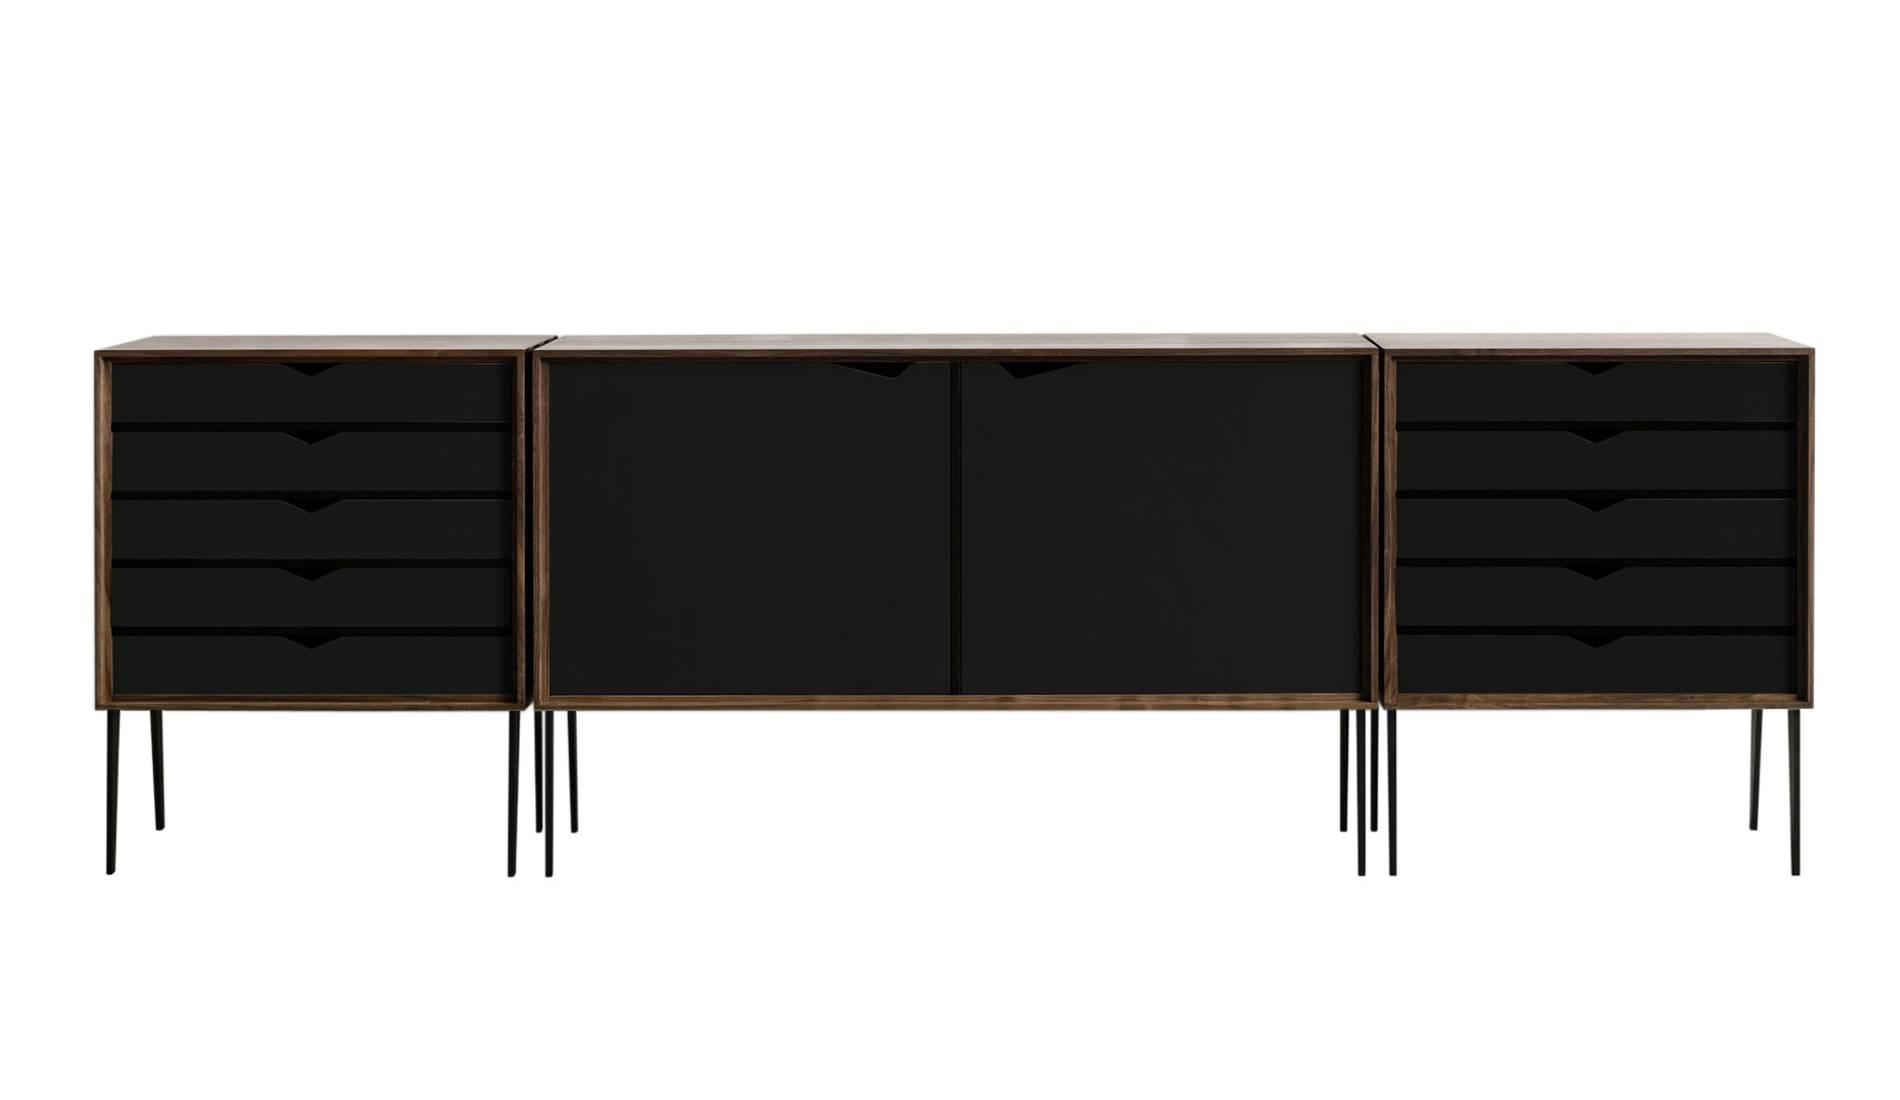 Andersen S2 Walnut / Black Sideboard | Dopo Domani intended for Black And Walnut Sideboards (Image 2 of 30)